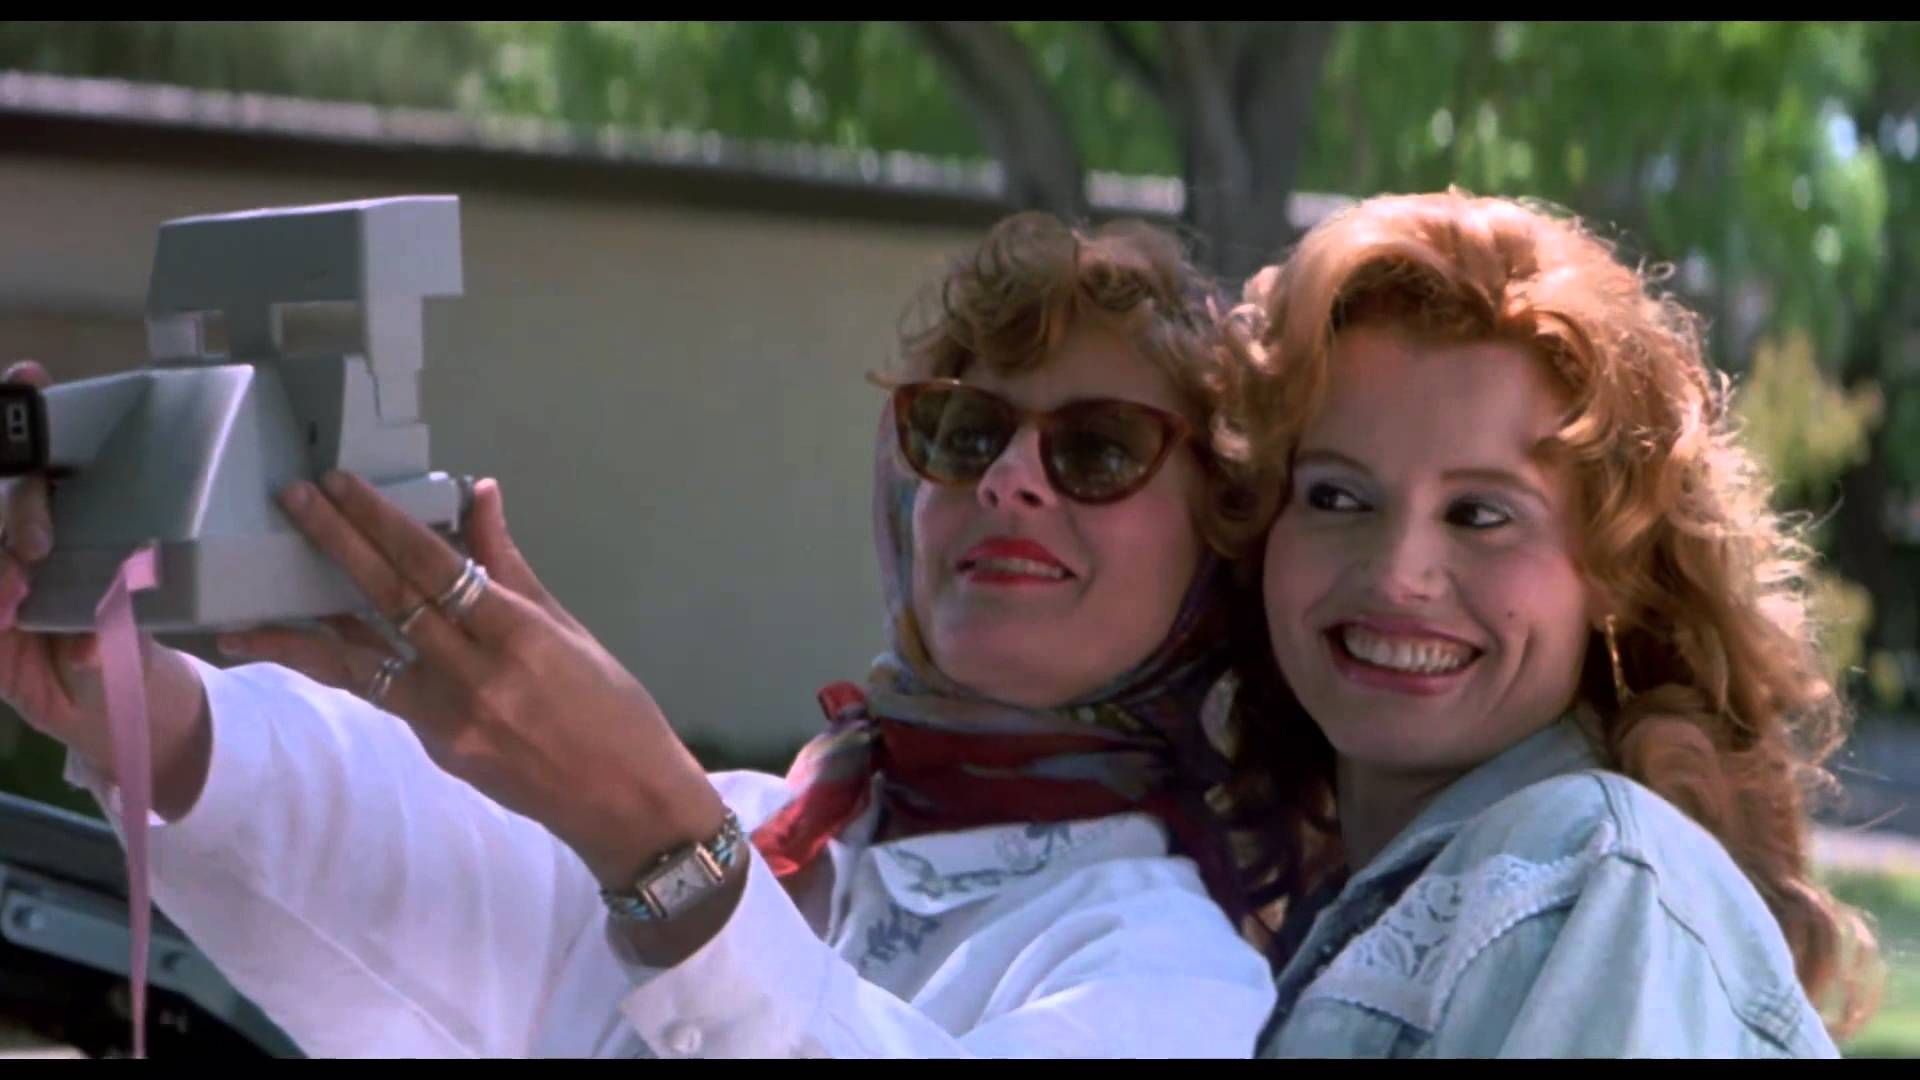 Thelma and Louise 25th anniversary: 15 things you may not know about the film